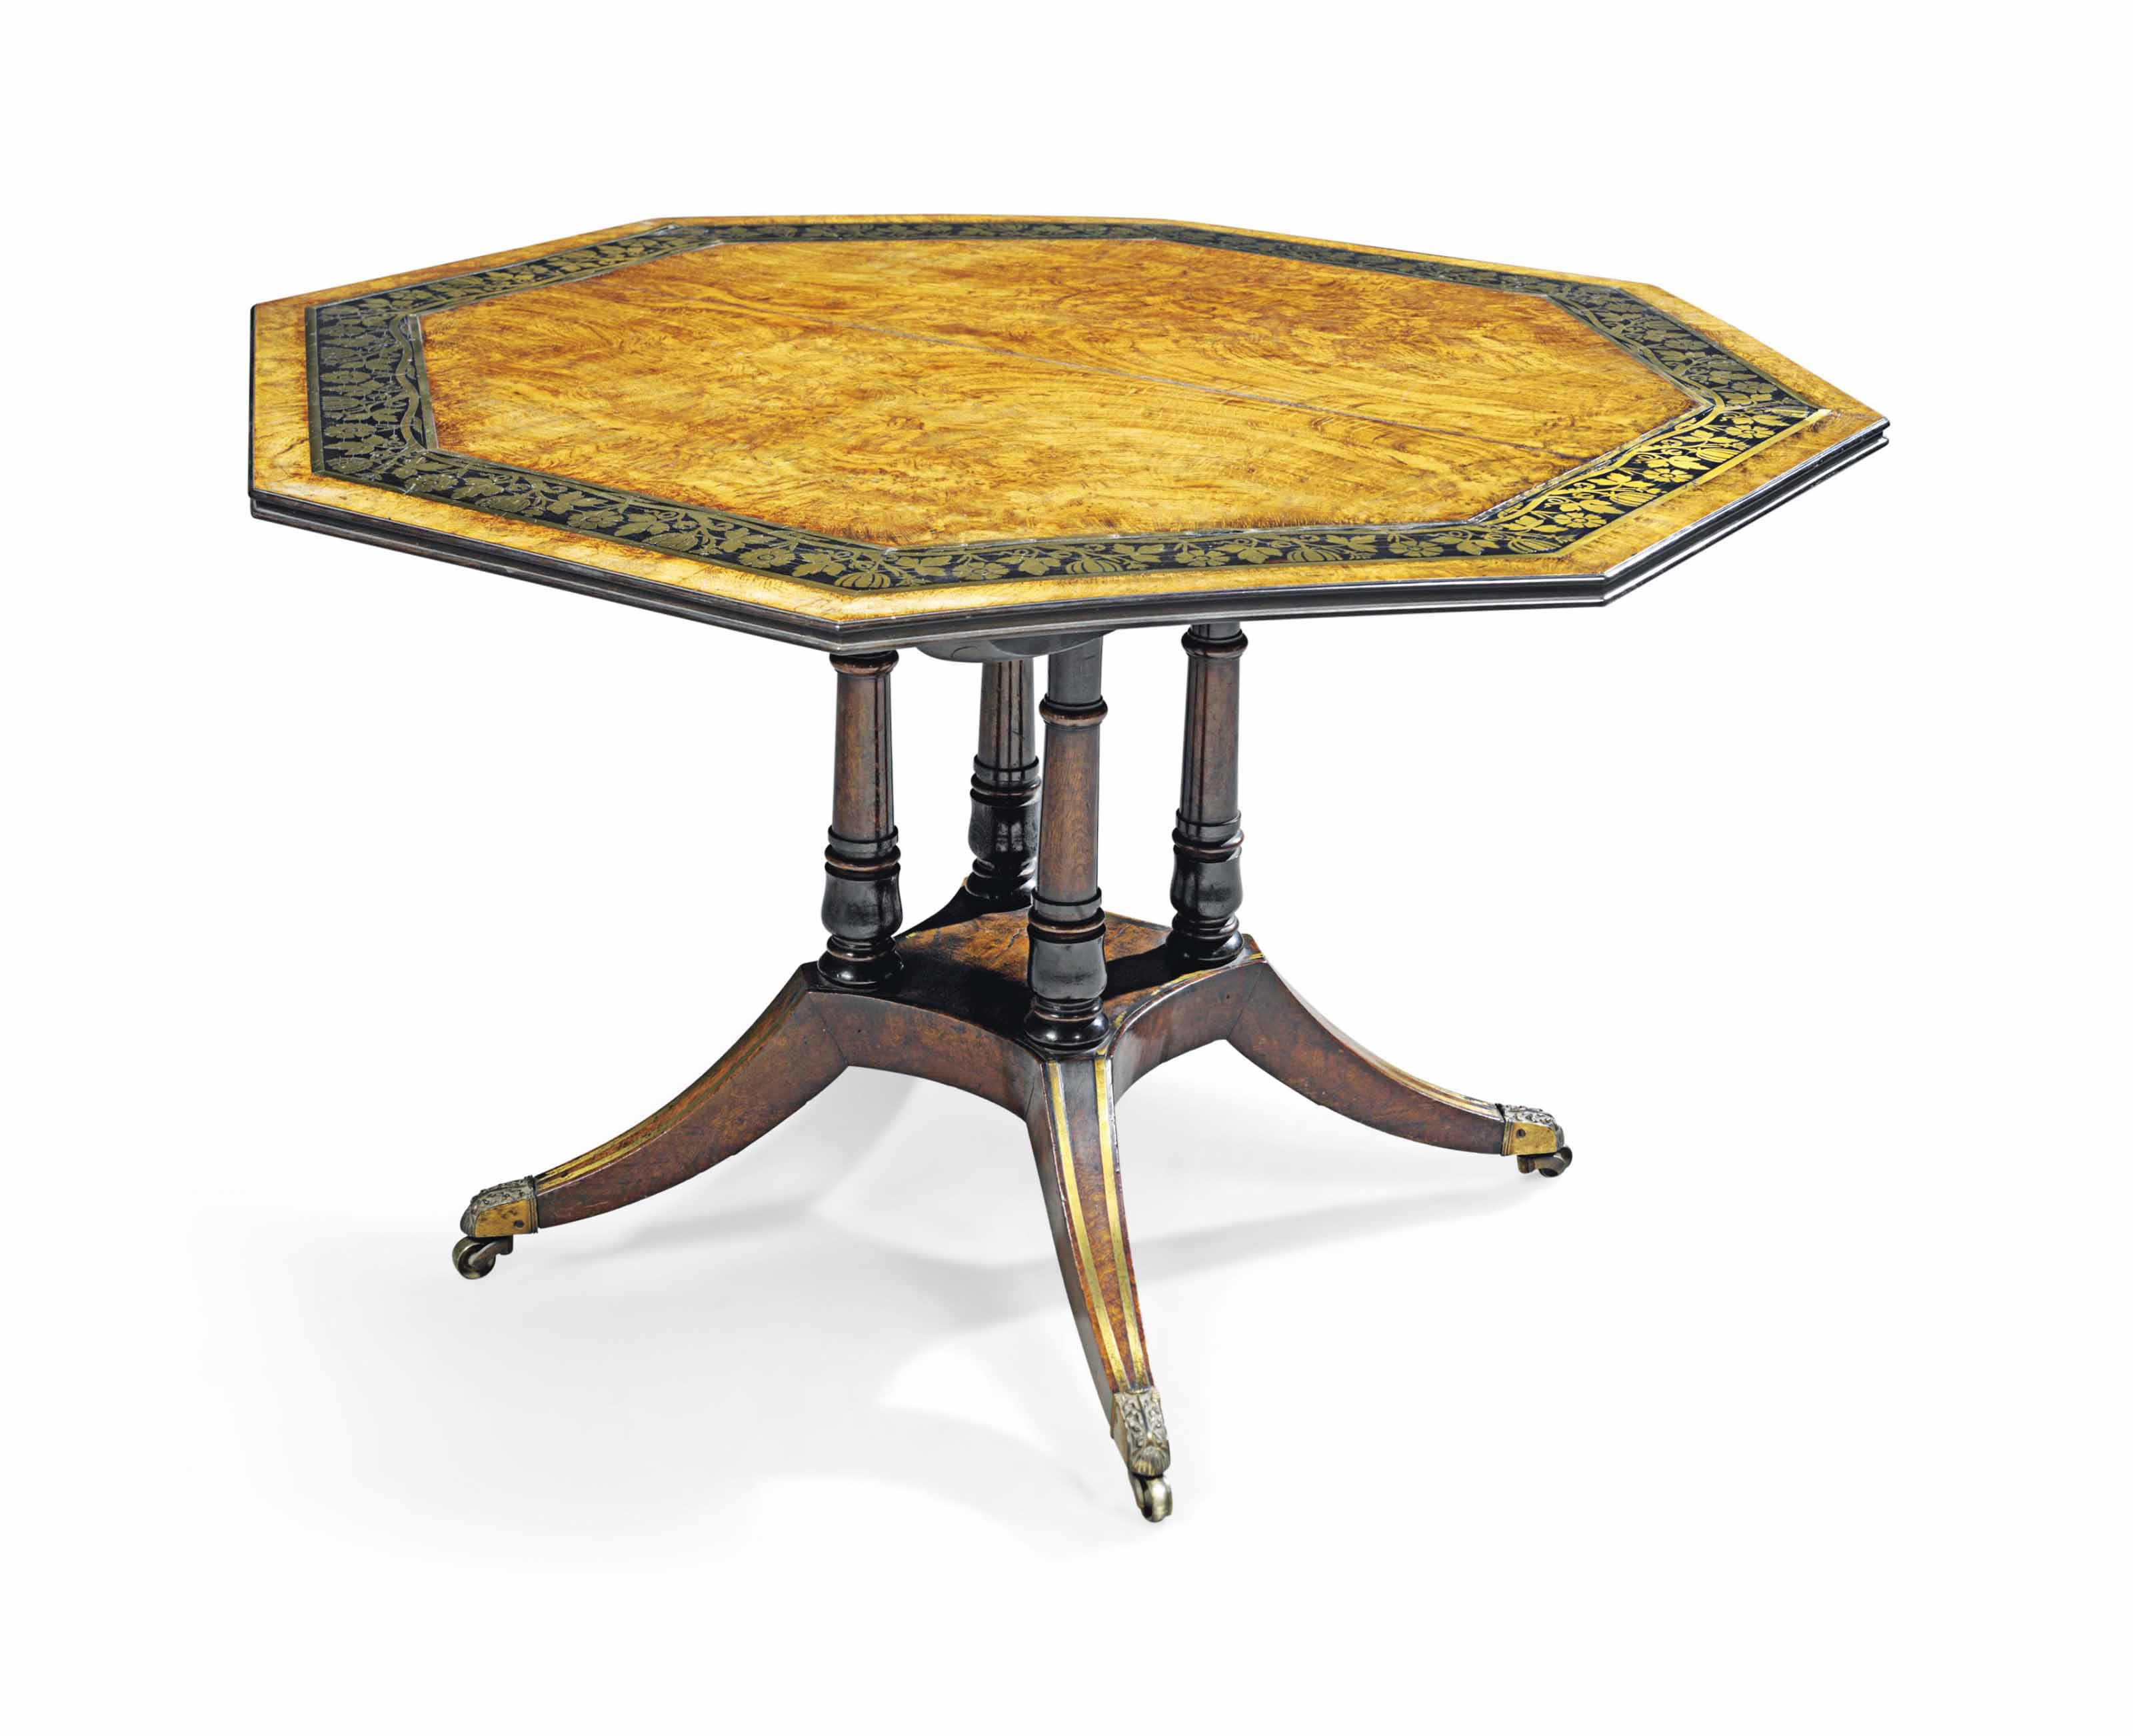 A REGENCY BRASS AND EBONY-INLAID FIGURED OAK OCTAGONAL CENTRE TABLE